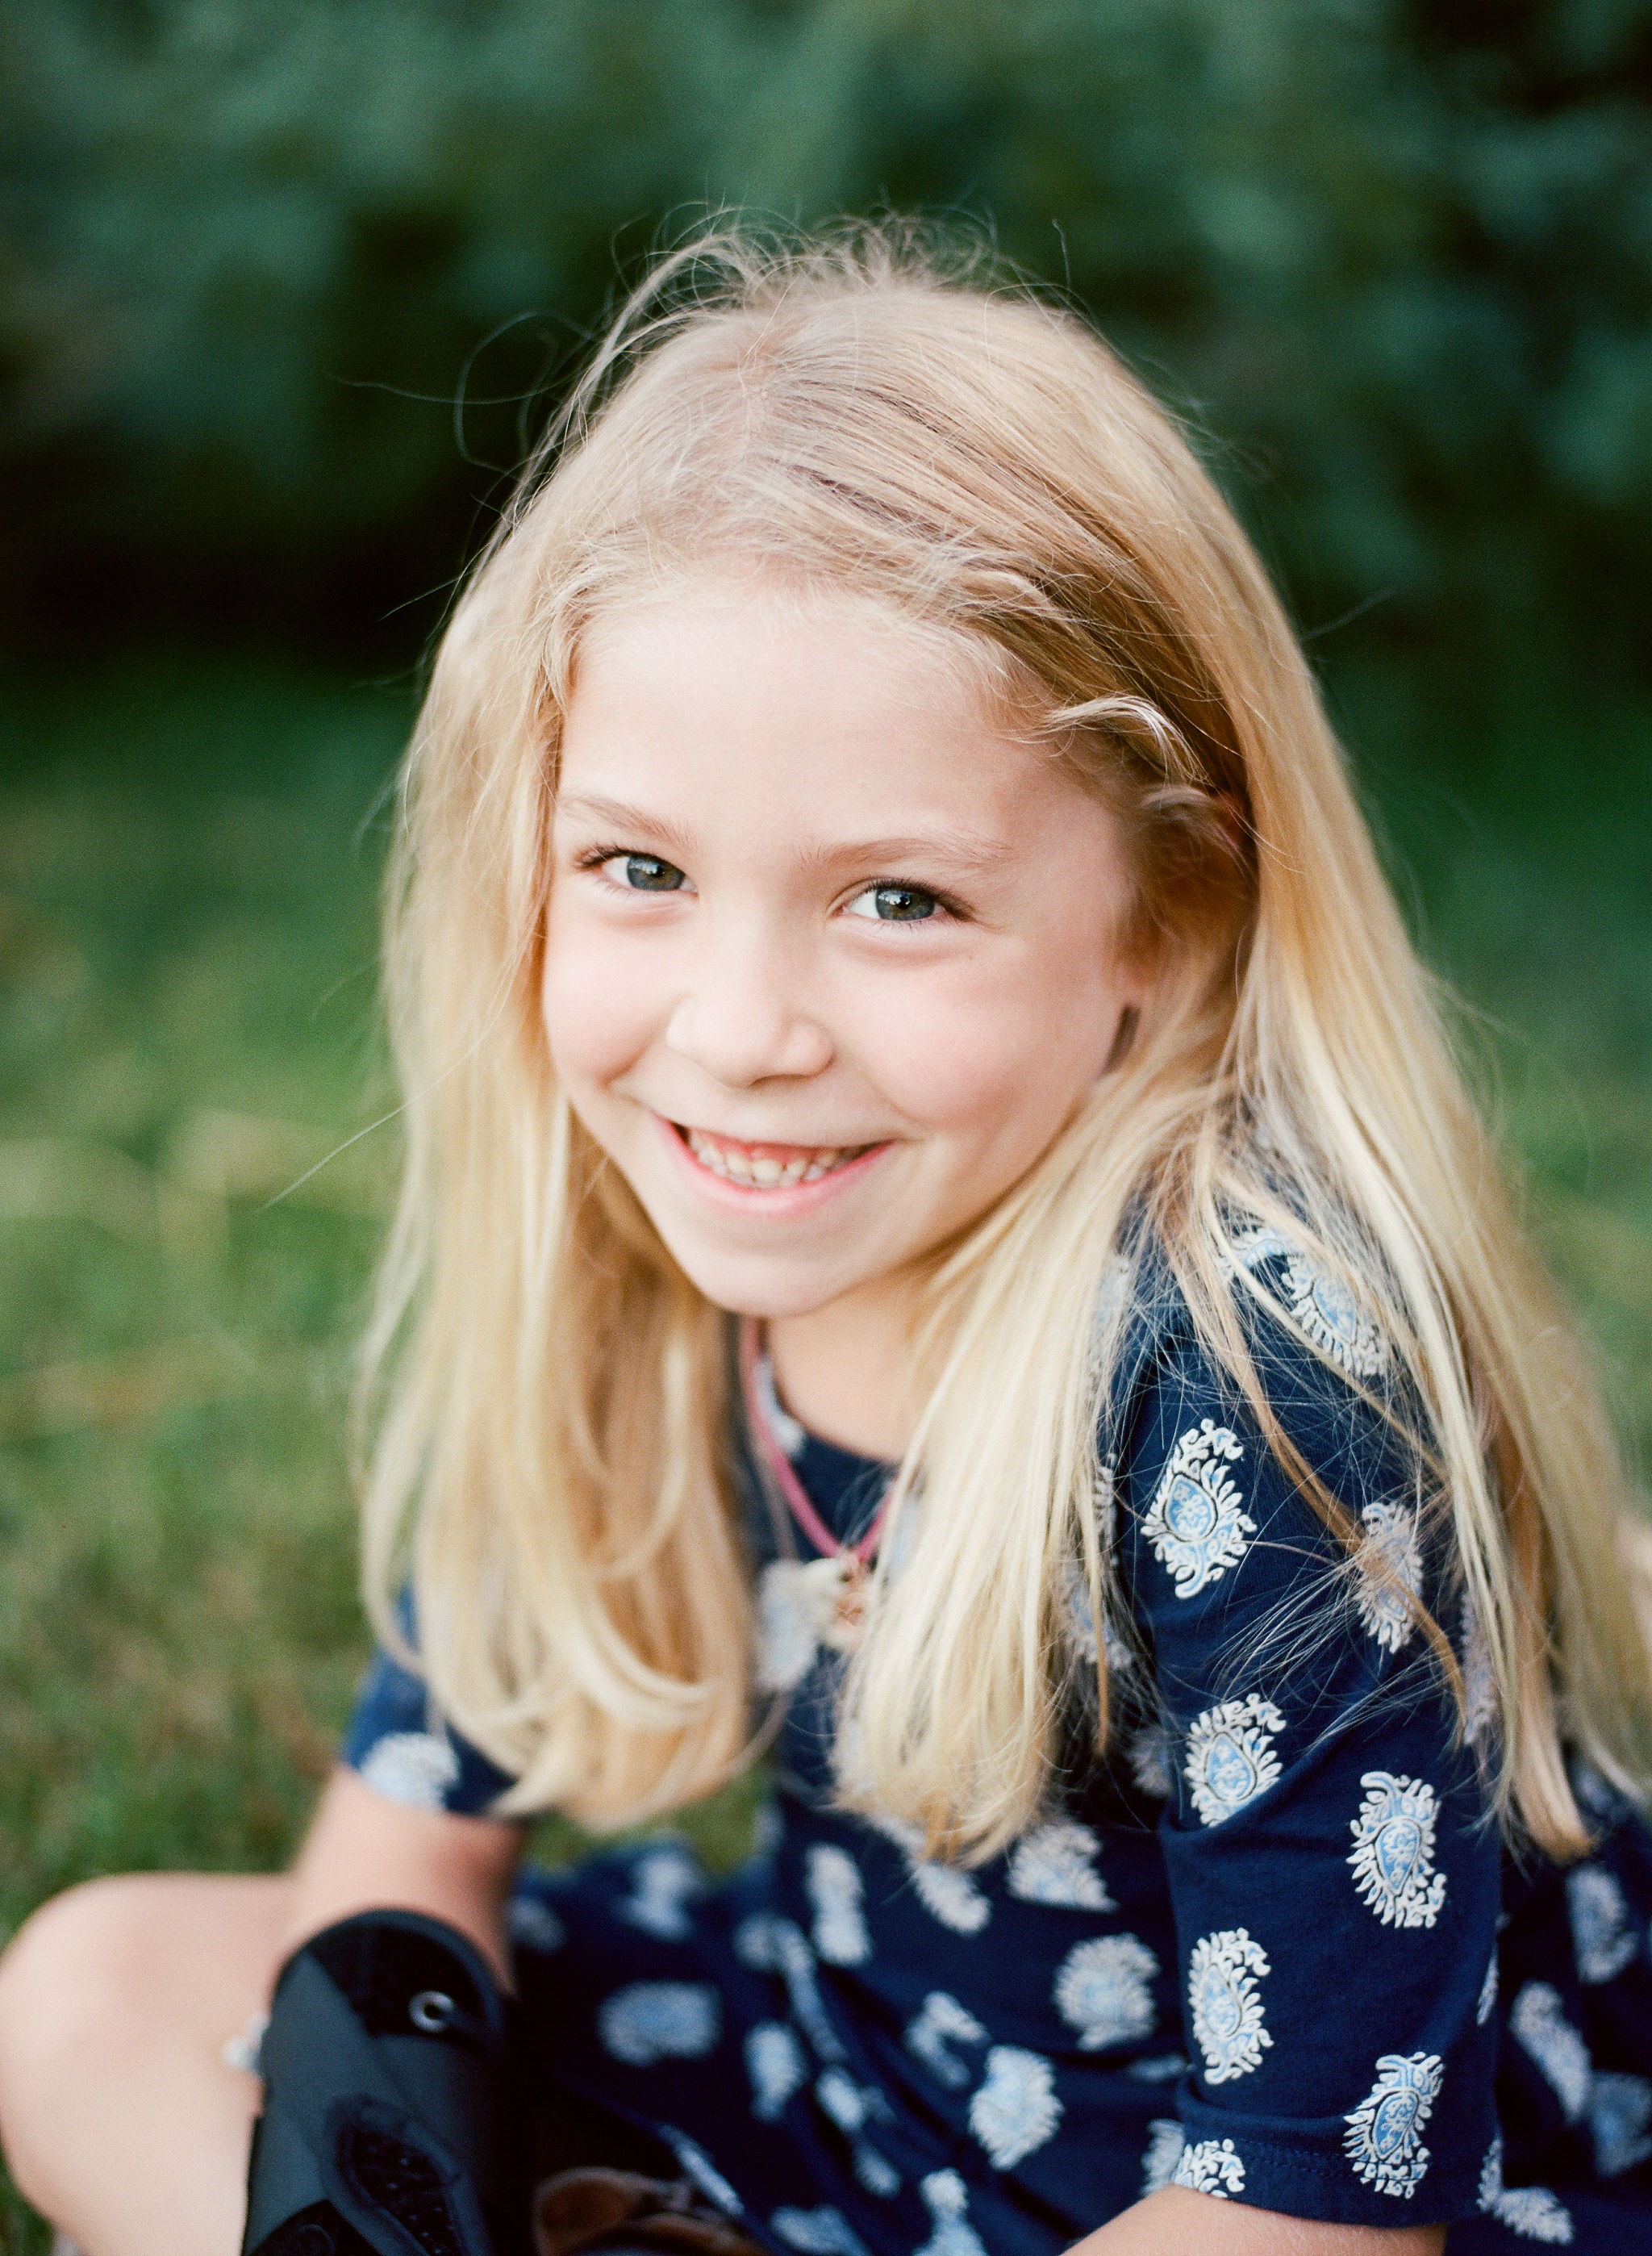 Childrens' portrait photographers in Nashville